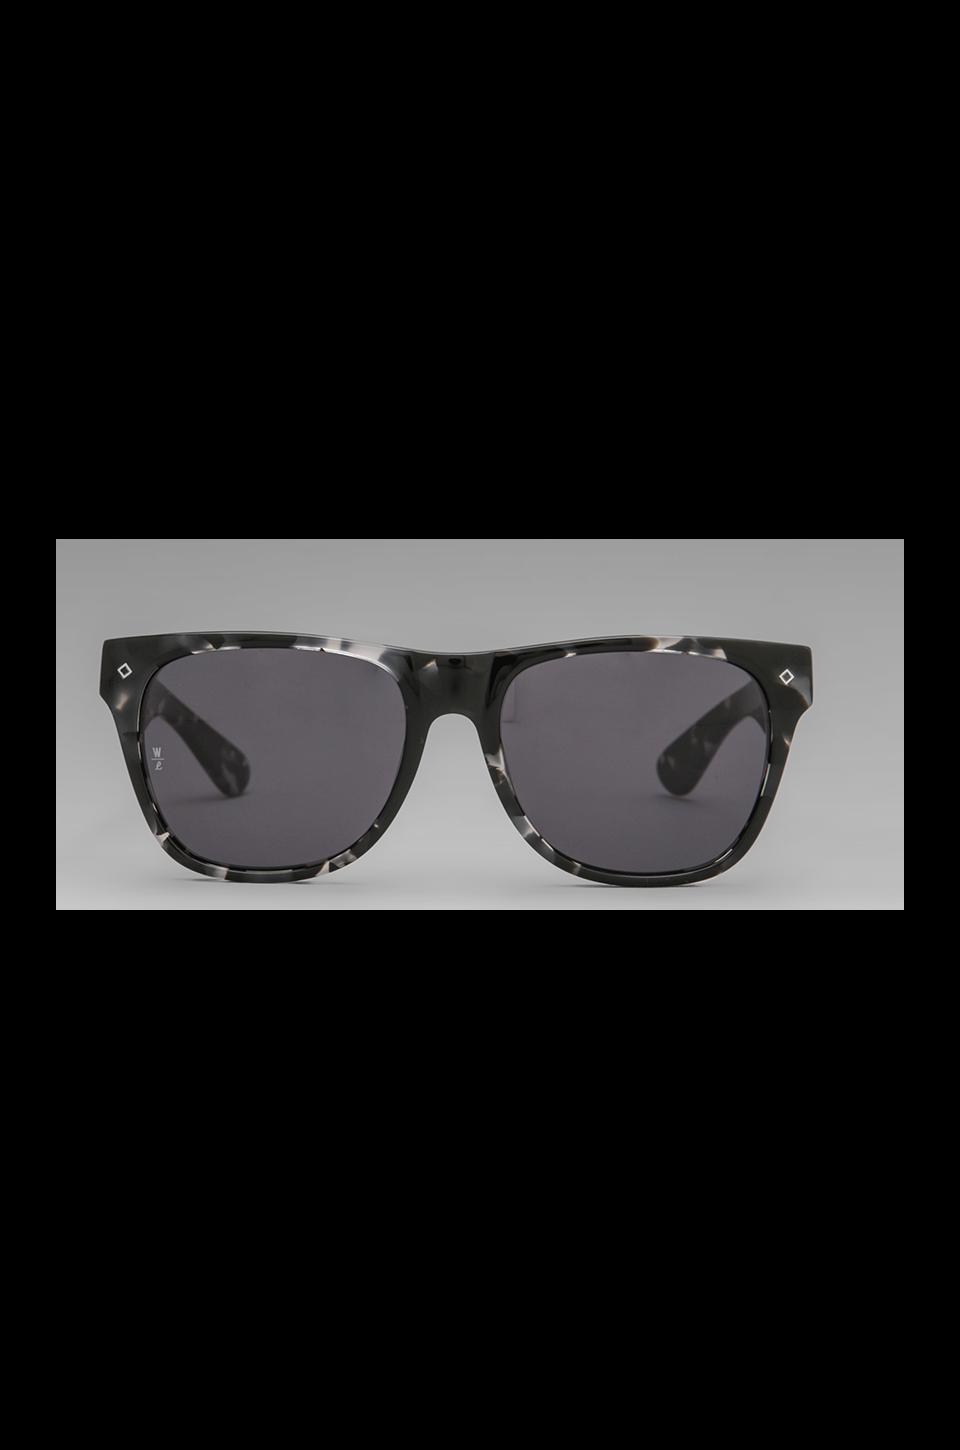 Wonderland Havasu in Black Tort/Gloss Black/Grey